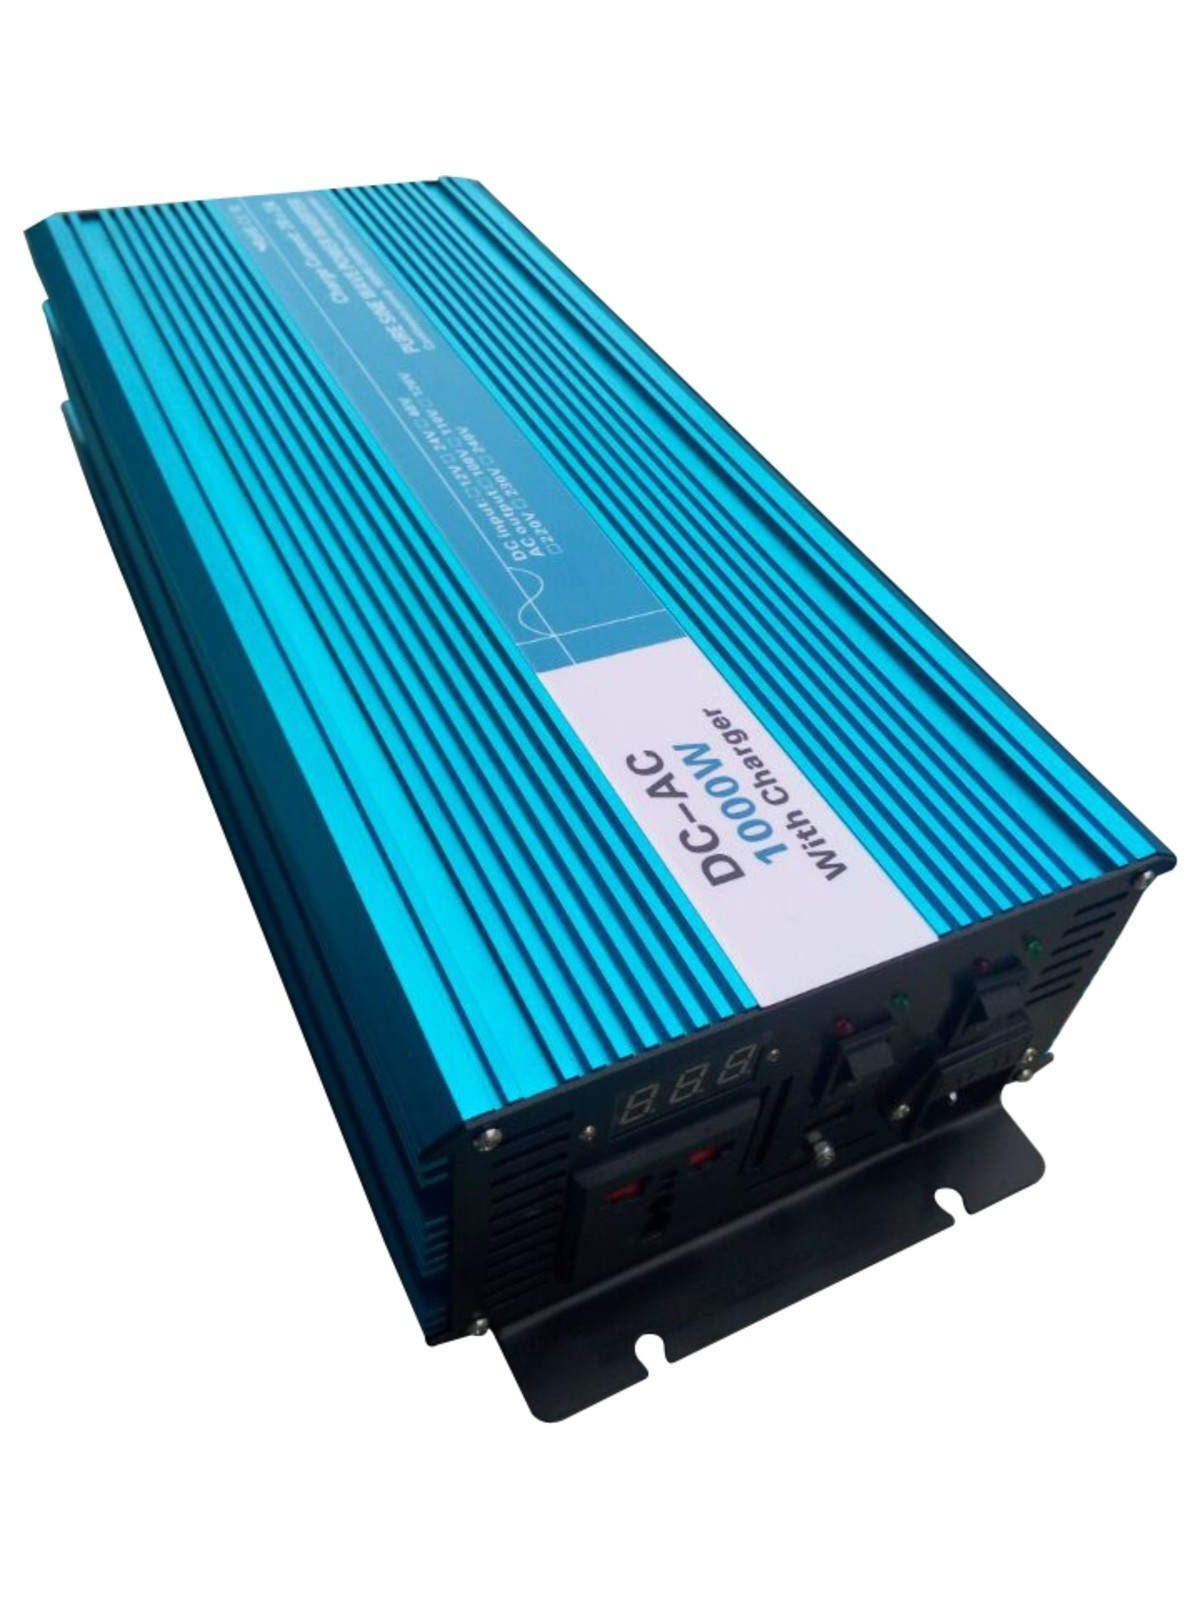 1000W Pure Sine Wave Inverter,DC 12V/24V/48V To AC 110V/220V,off Grid Solar power Inverter,voltage Converter with charger/UPS 3000w wind solar hybrid off grid inverter dc to ac 12v 24v 110v 220v 3kw pure sine wave inverter